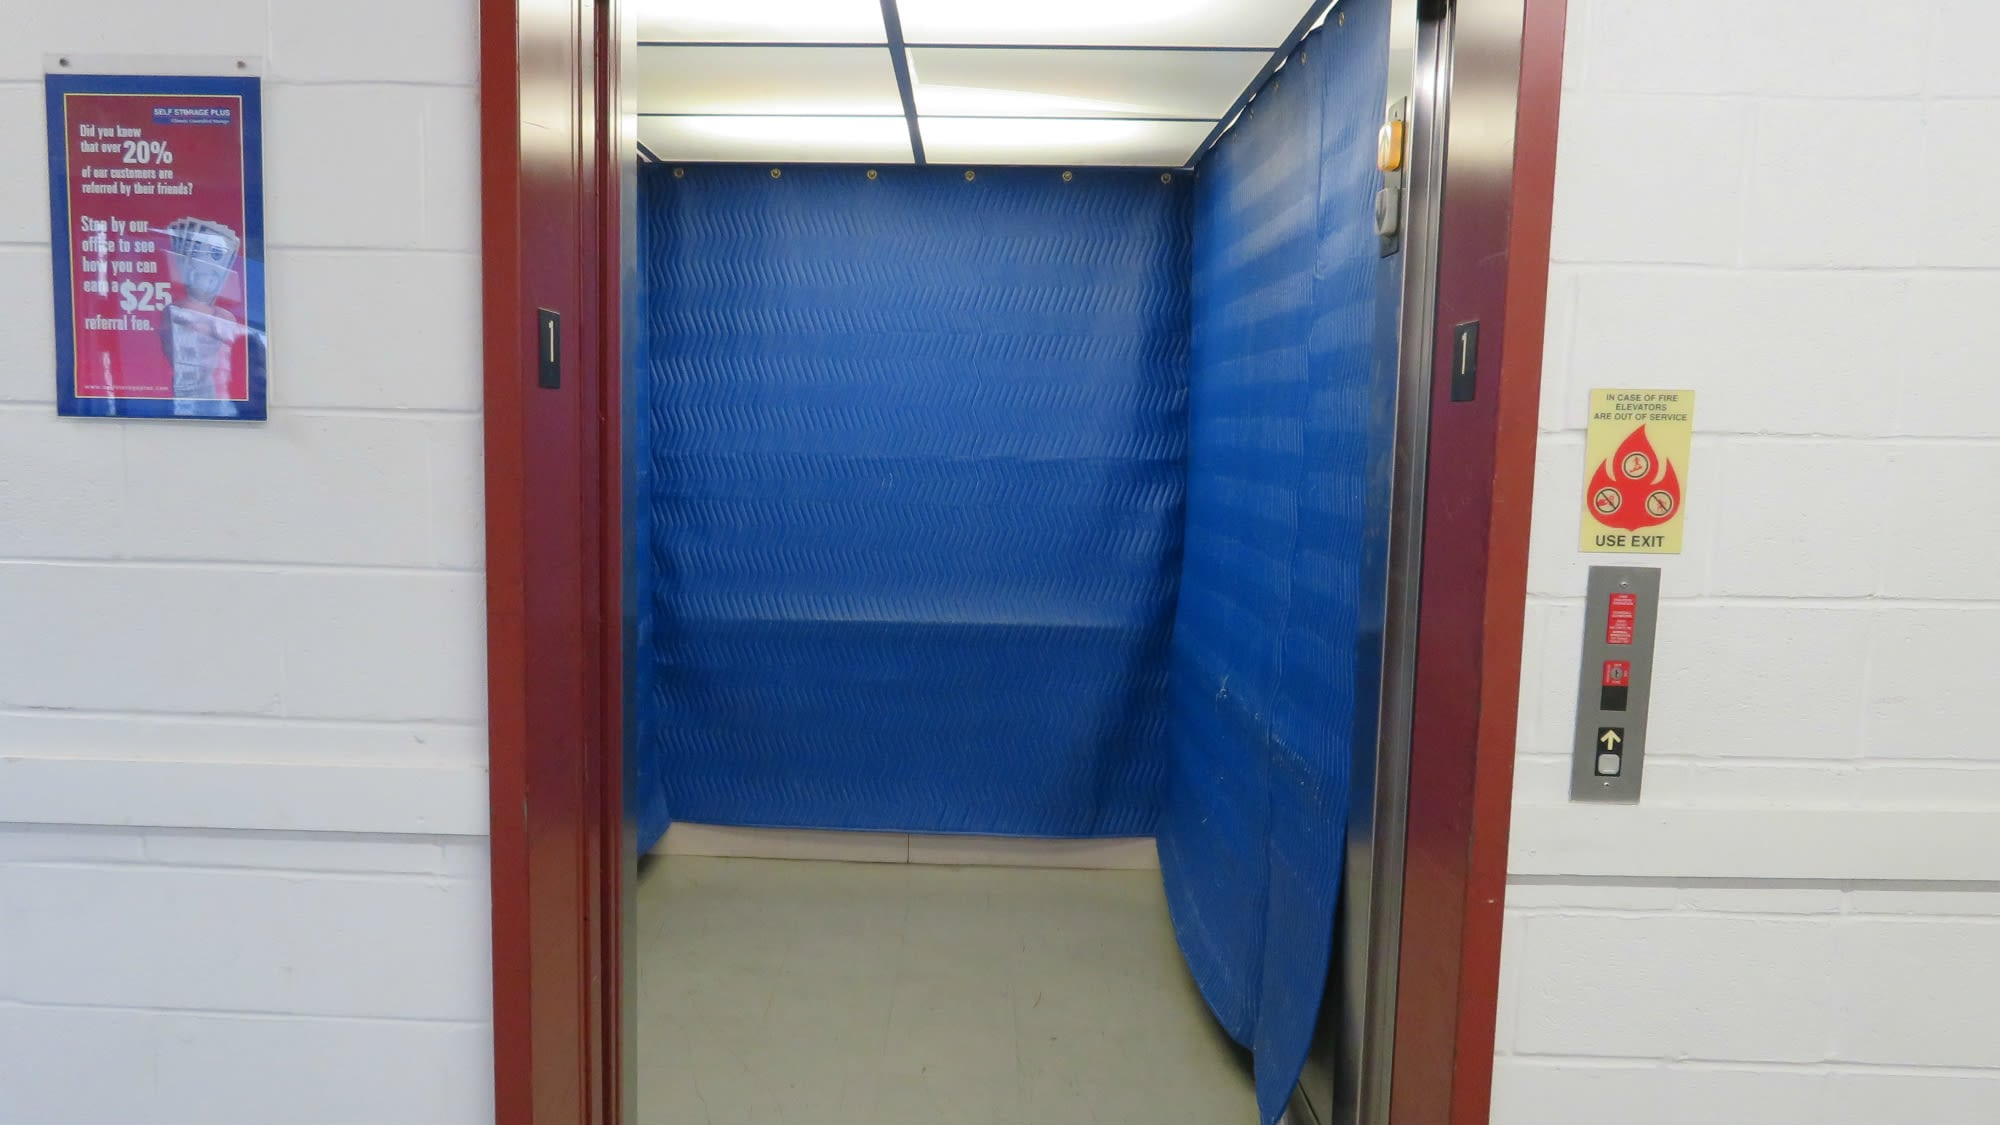 Elevator access at Self Storage Plus in Silver Spring, MD